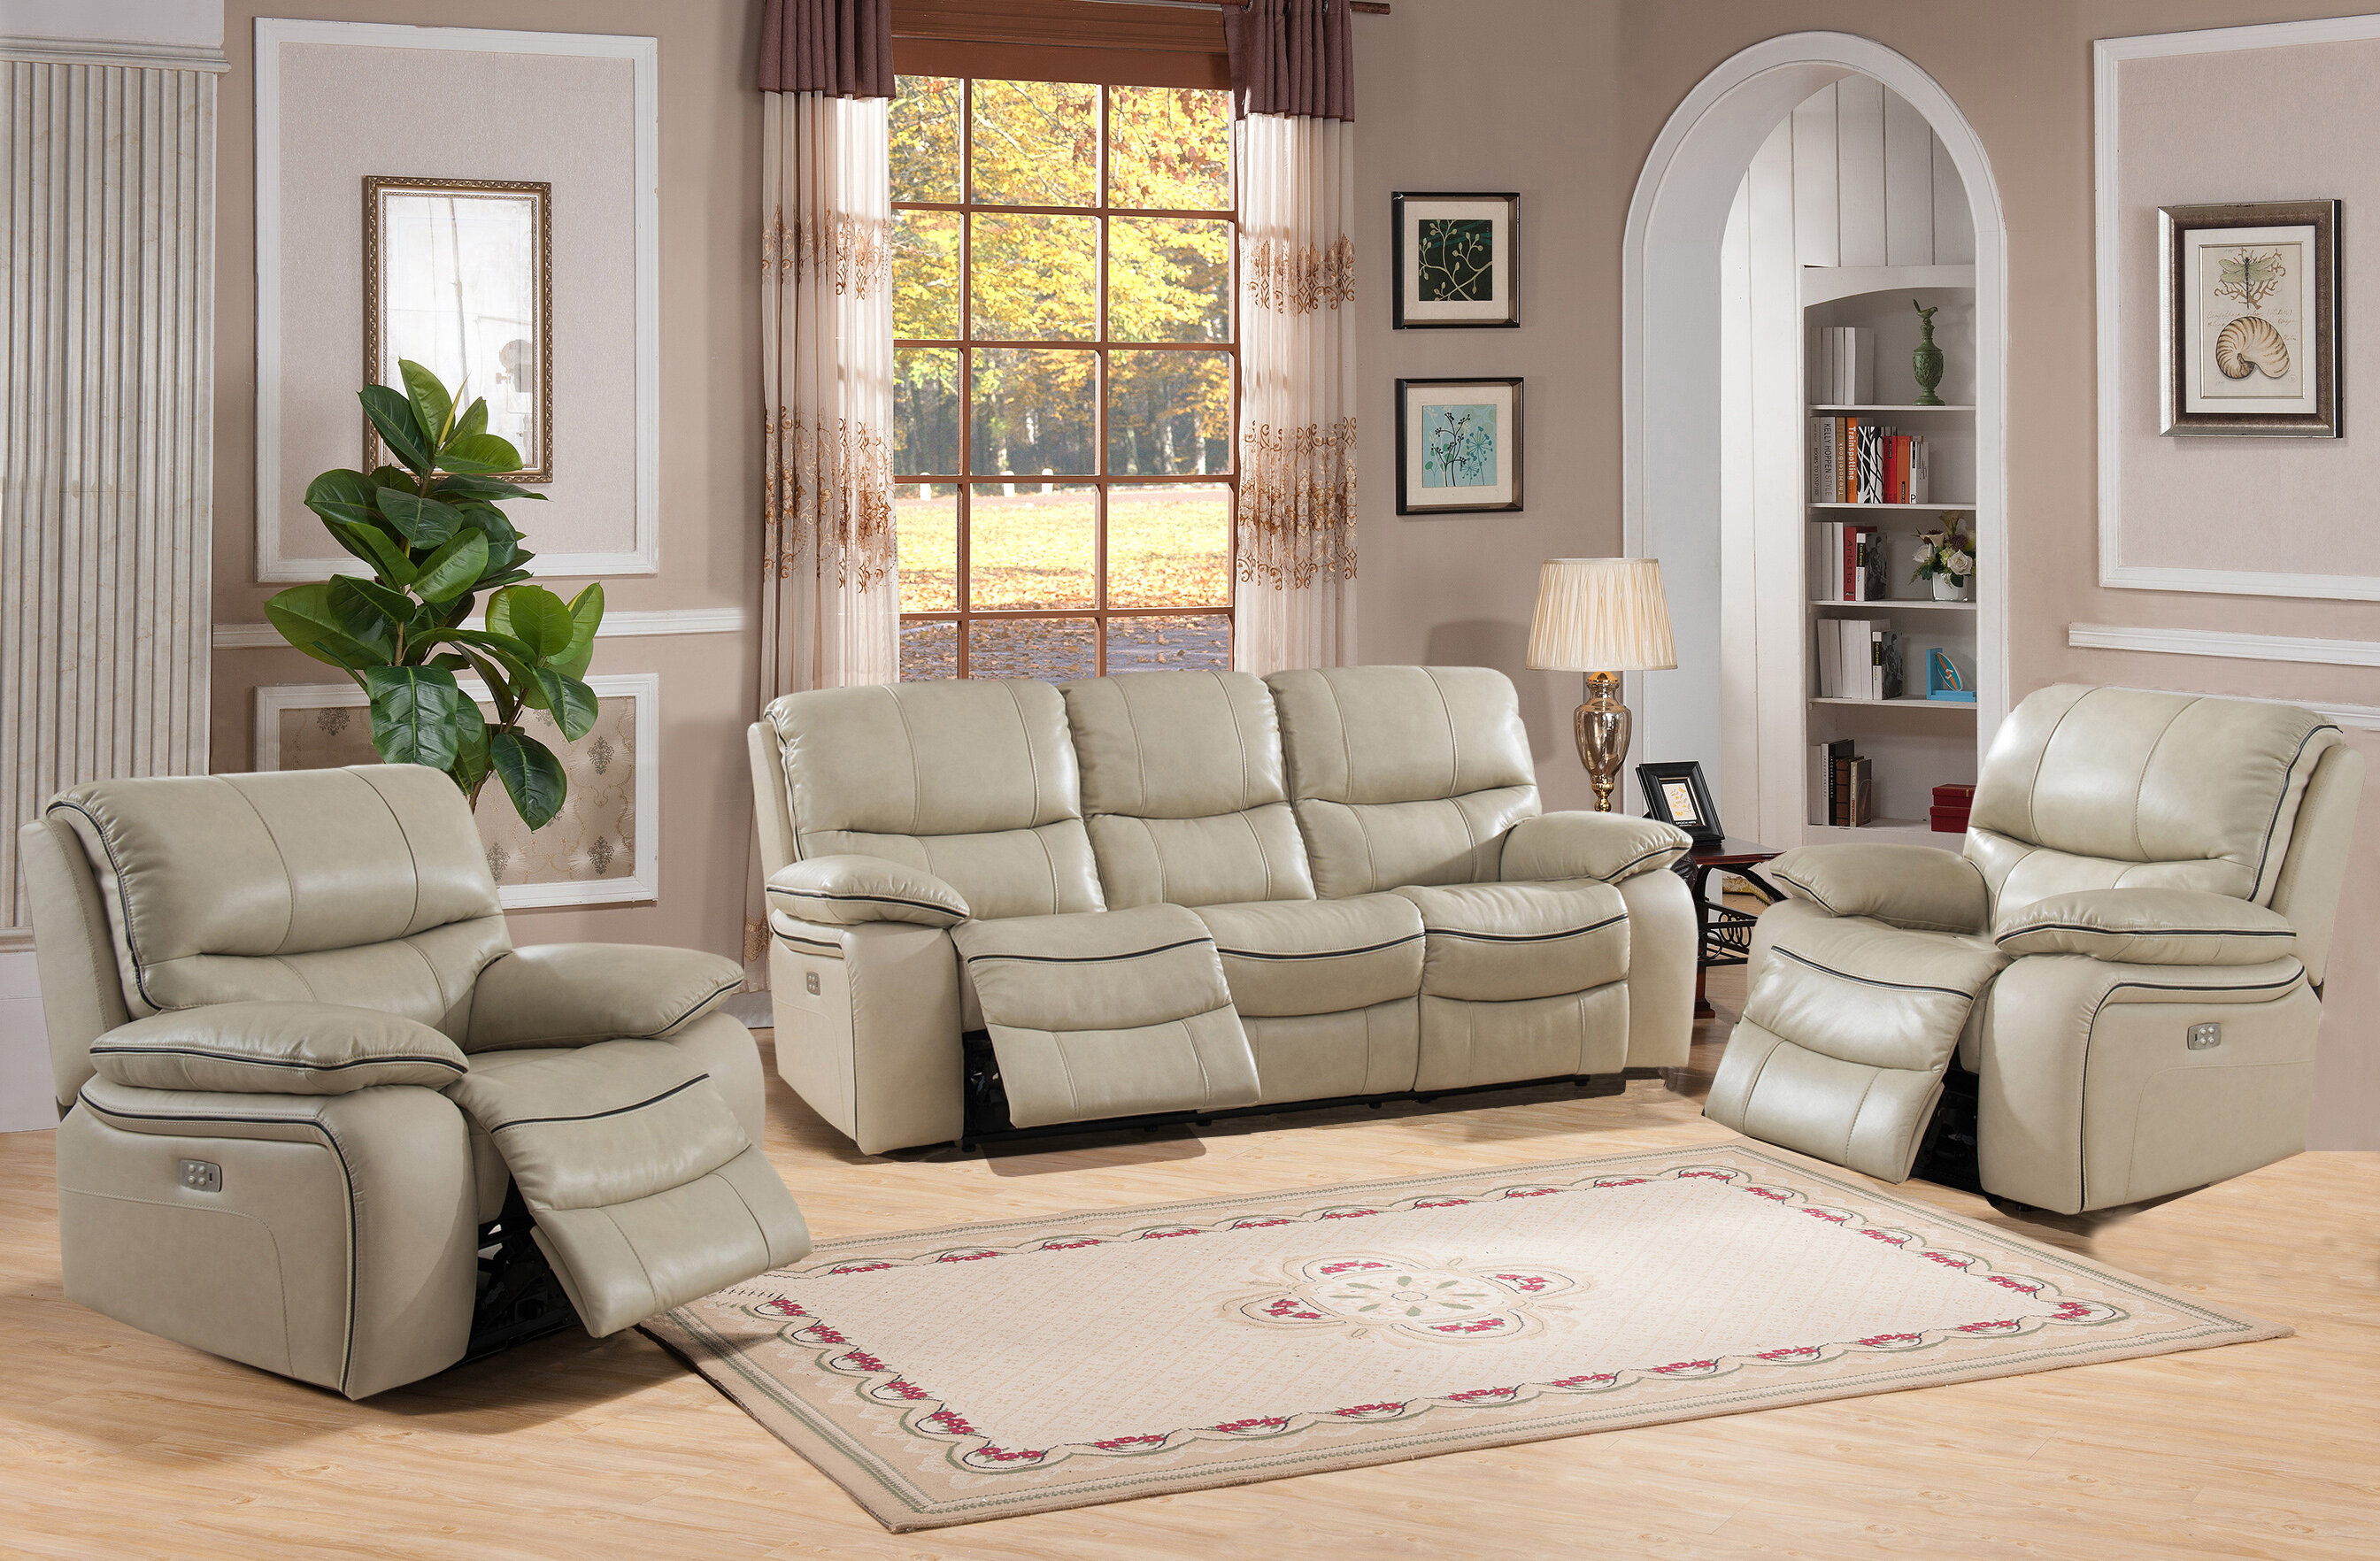 Red Barrel Studio Deshaun Reclining 3 Piece Leather Living Room Set Wayfair